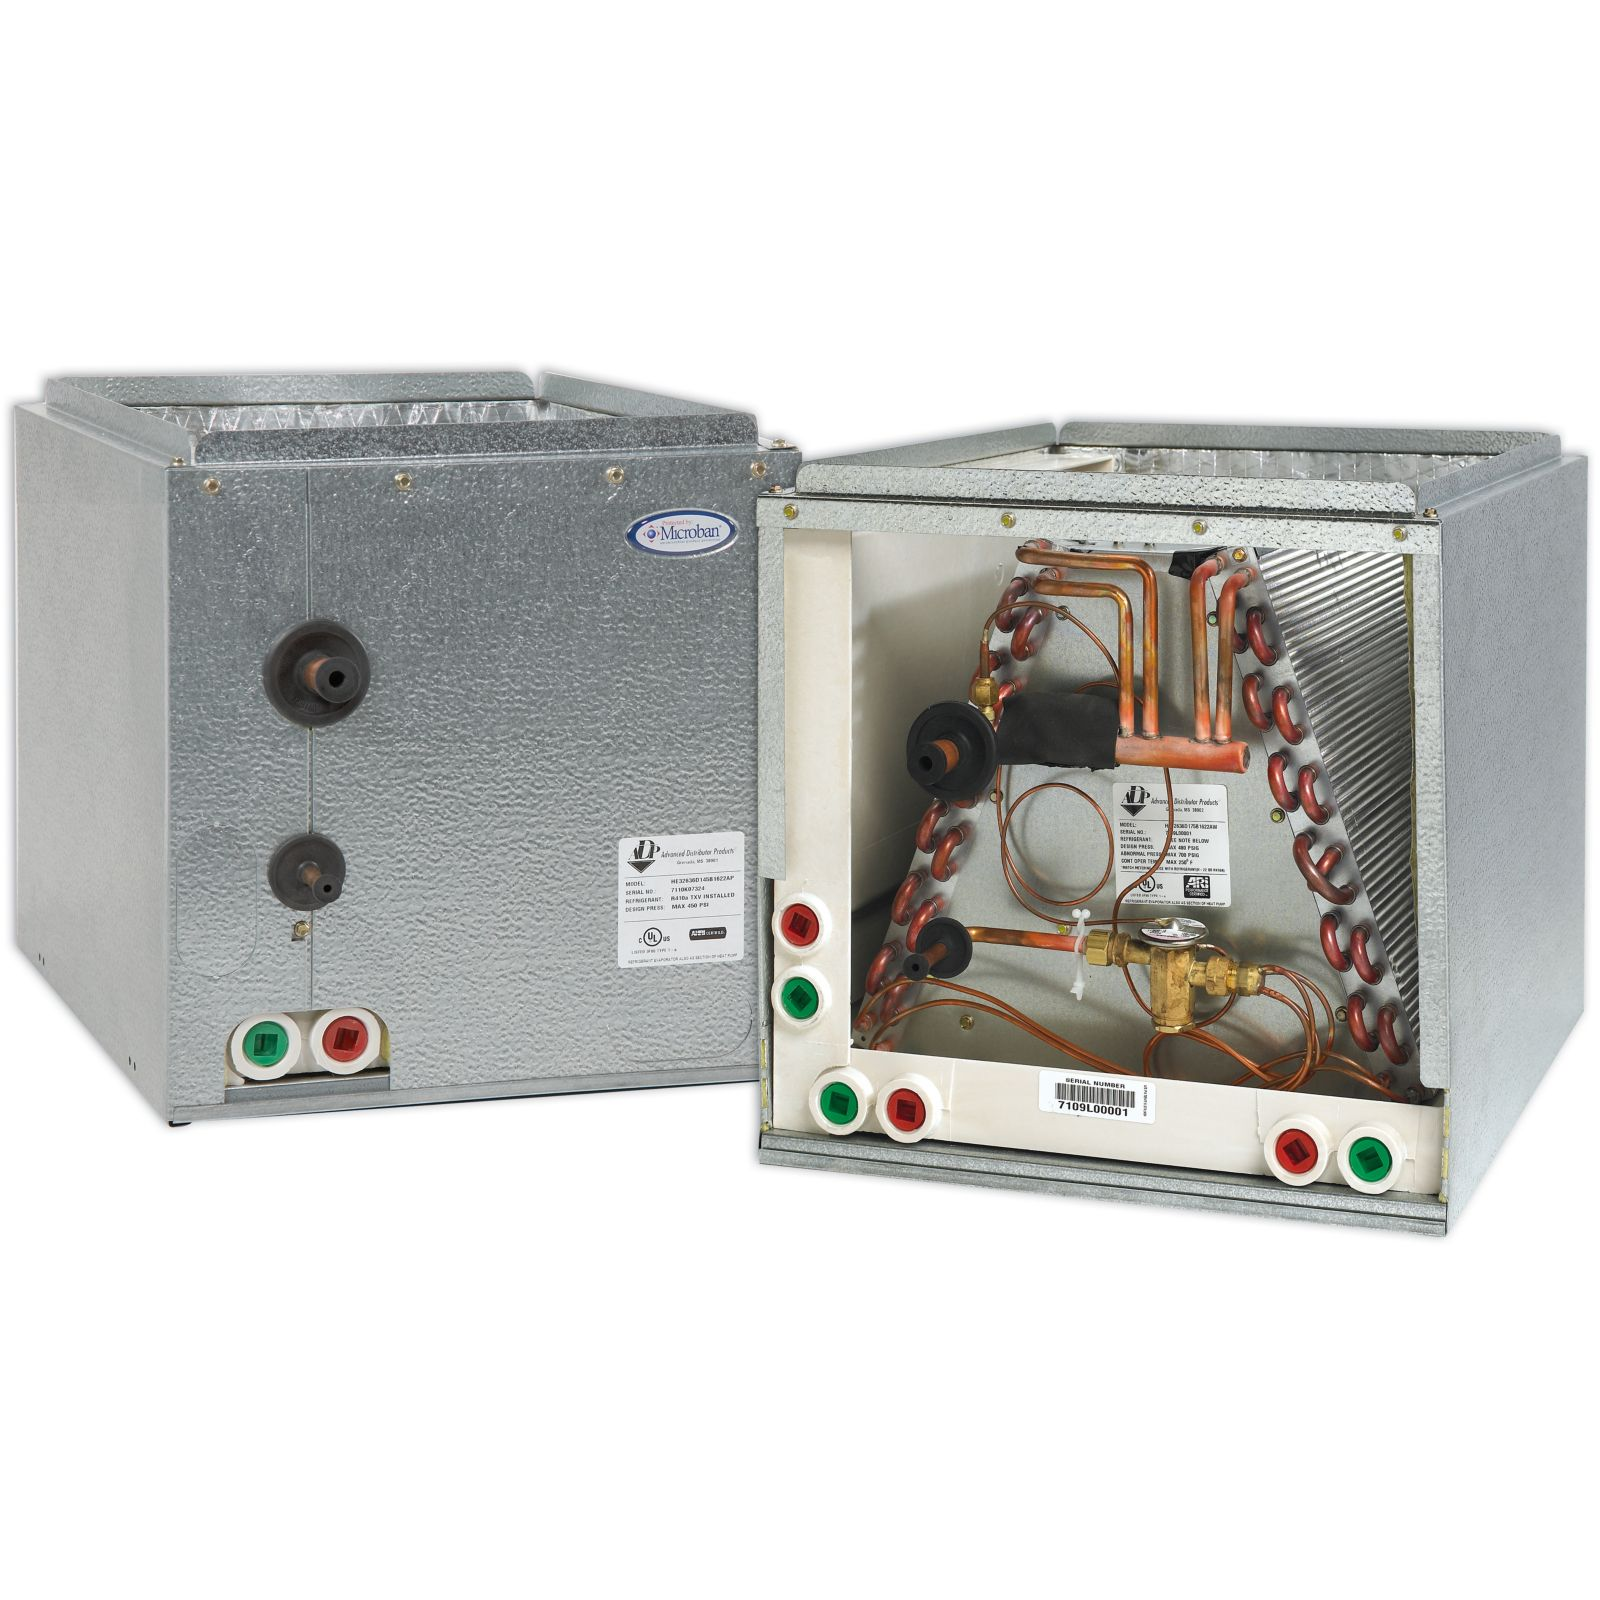 "ADP RE49660E210B2705AP - HE Series Cased Evaporator Coil 5 Ton Copper Left Hand, R410A, 21.5"" X 21"" X 27.5"""